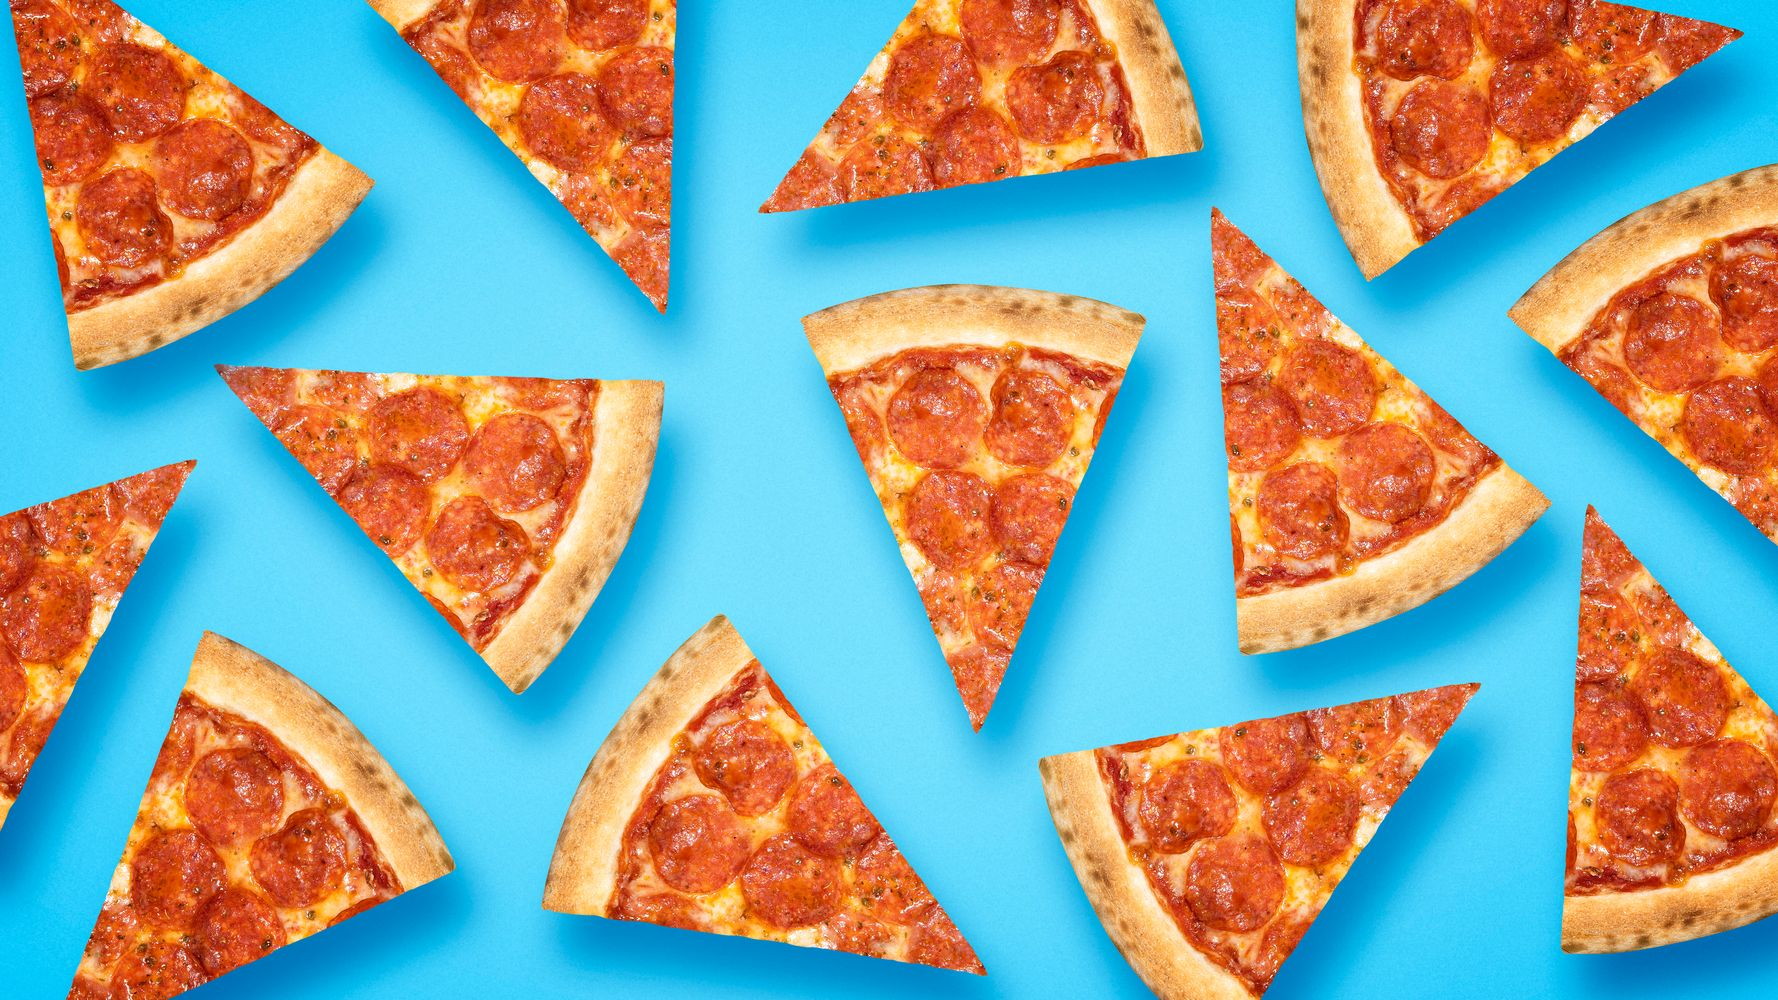 'You Don't Have To Earn A Pizza': Calorie Labelling Based On Exercise Could 'Demonise' Food